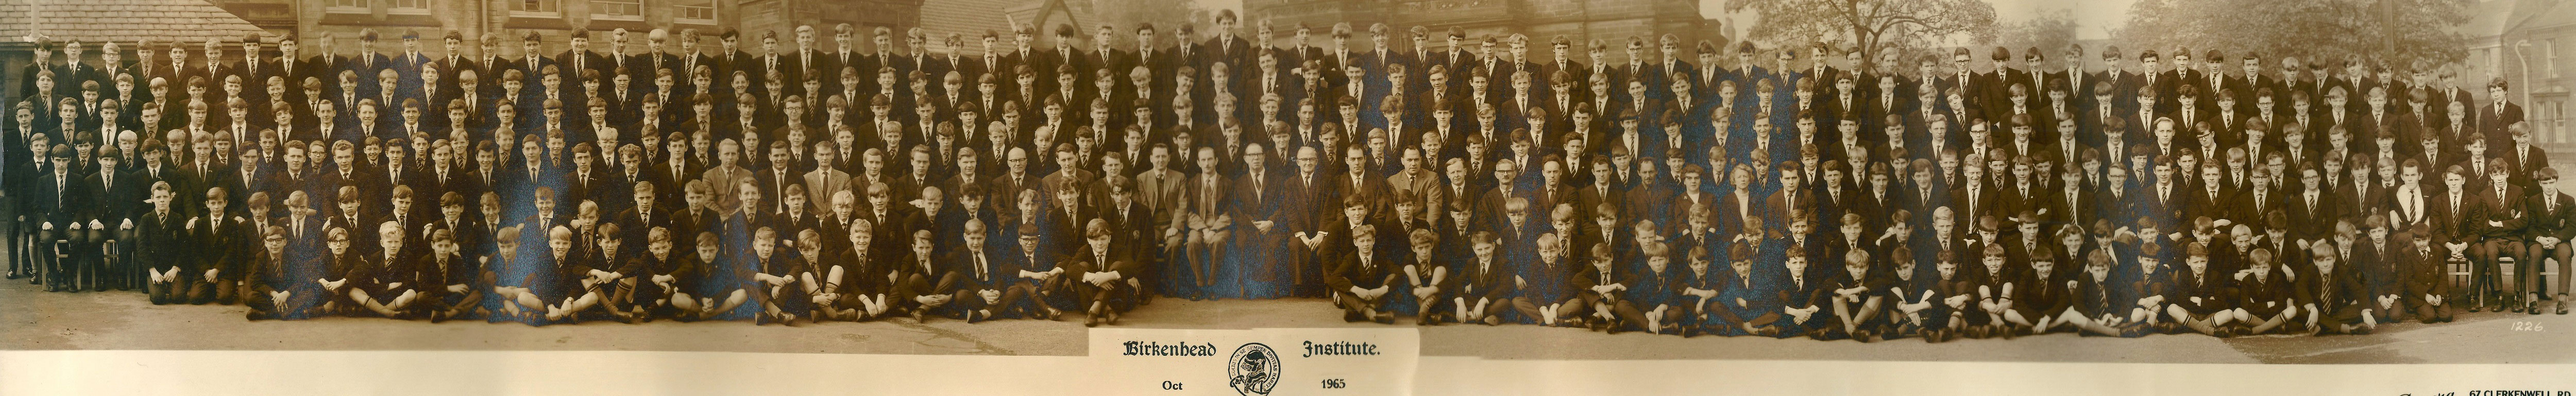 Whole School Photograph - October 1965